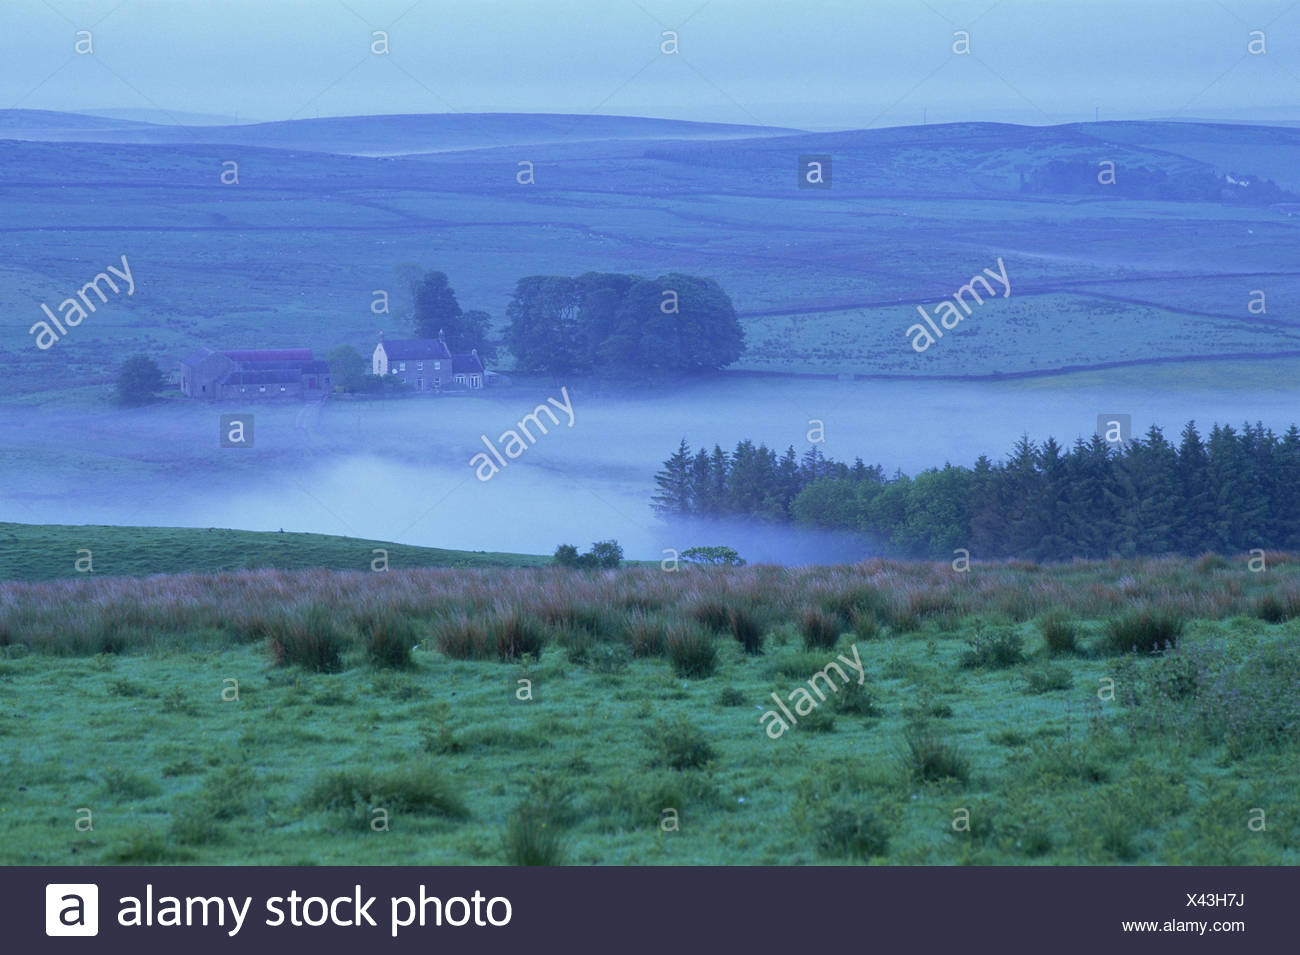 Great Britain, England, Northumbria, scenery, fog, farmhouse, Europe, Northumberland, width, distance, view, meadows, fields, hills, foggy, awfully, morning, atmospheric, deserted, blue, house, remotely, - Stock Image